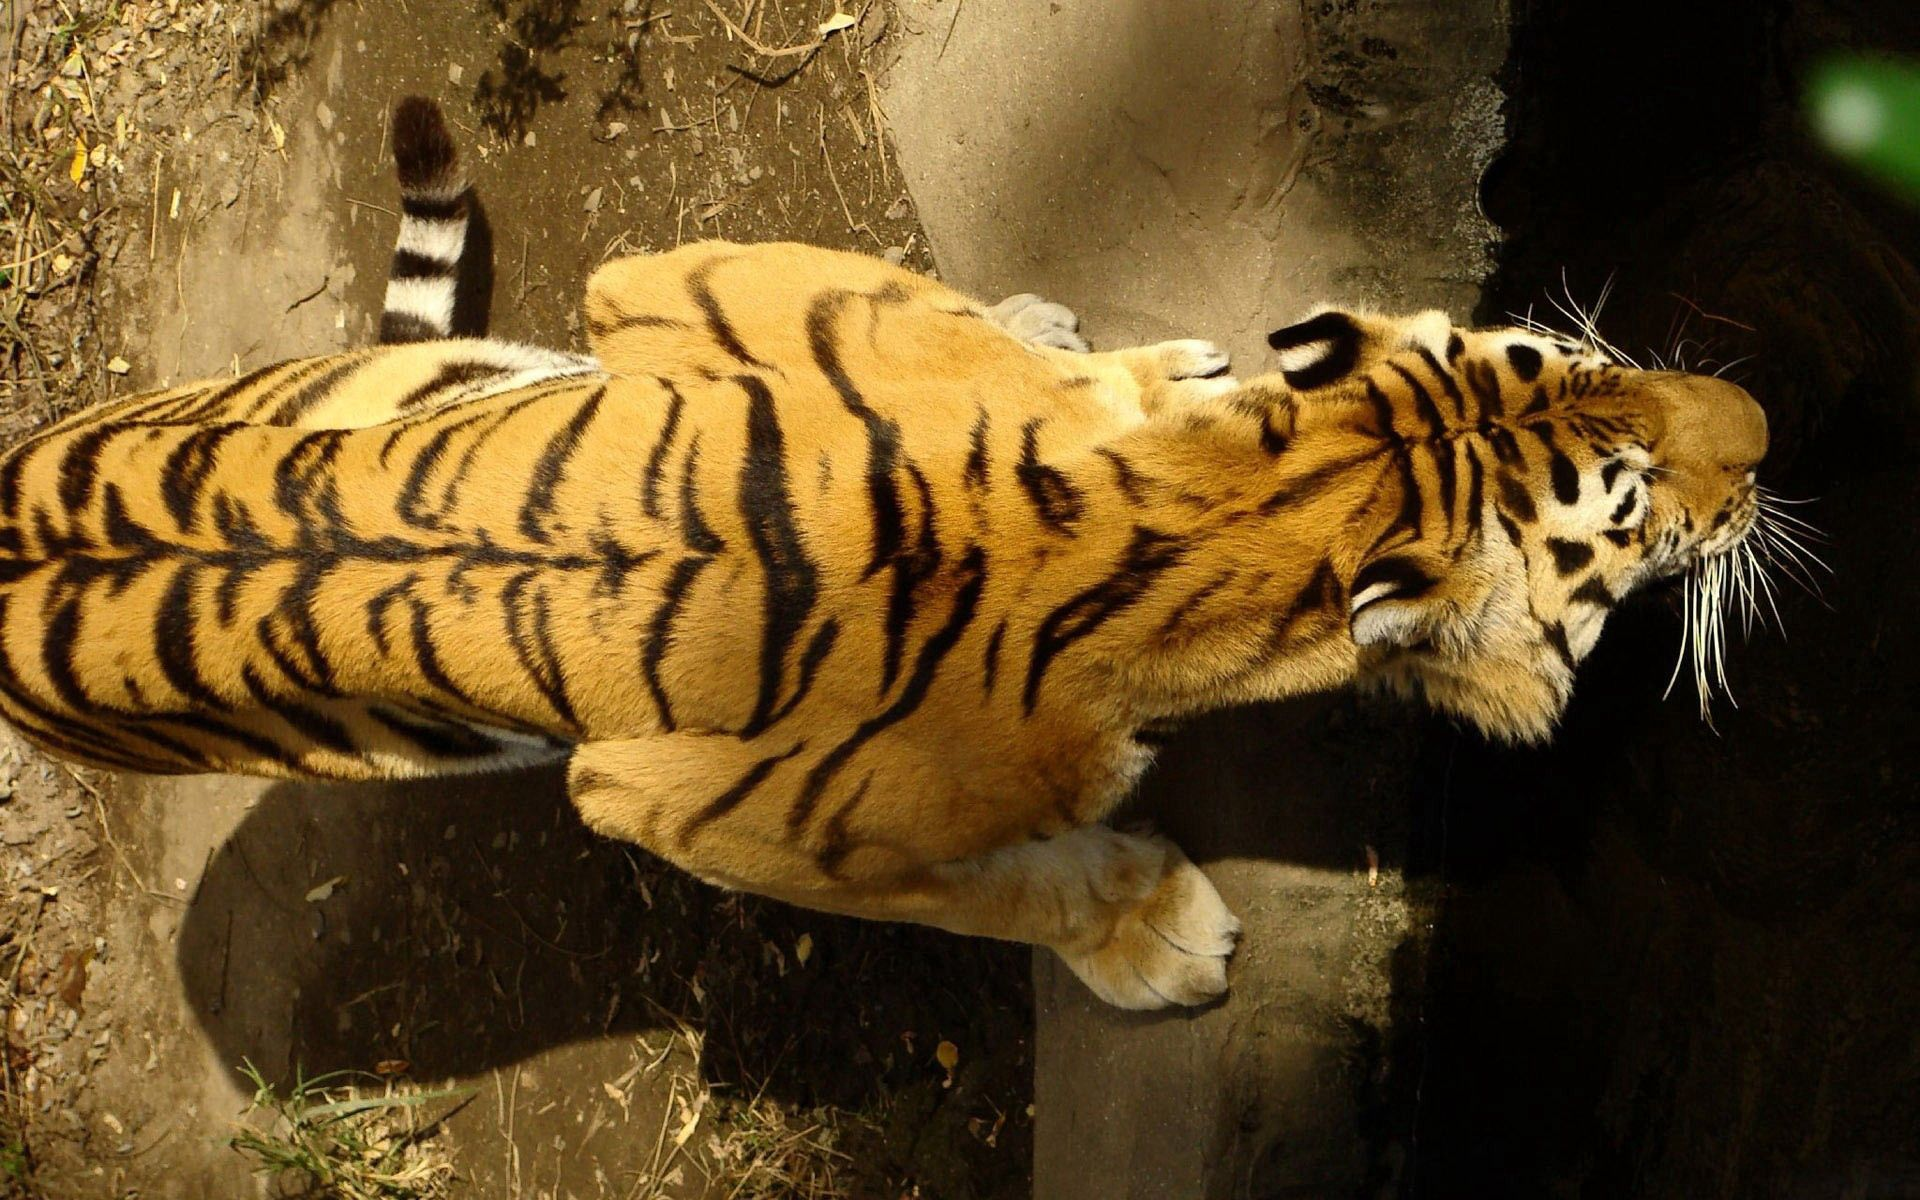 124180 download wallpaper Animals, Tiger, Back, Stripes, Streaks, Water, Hunting, Hunt screensavers and pictures for free